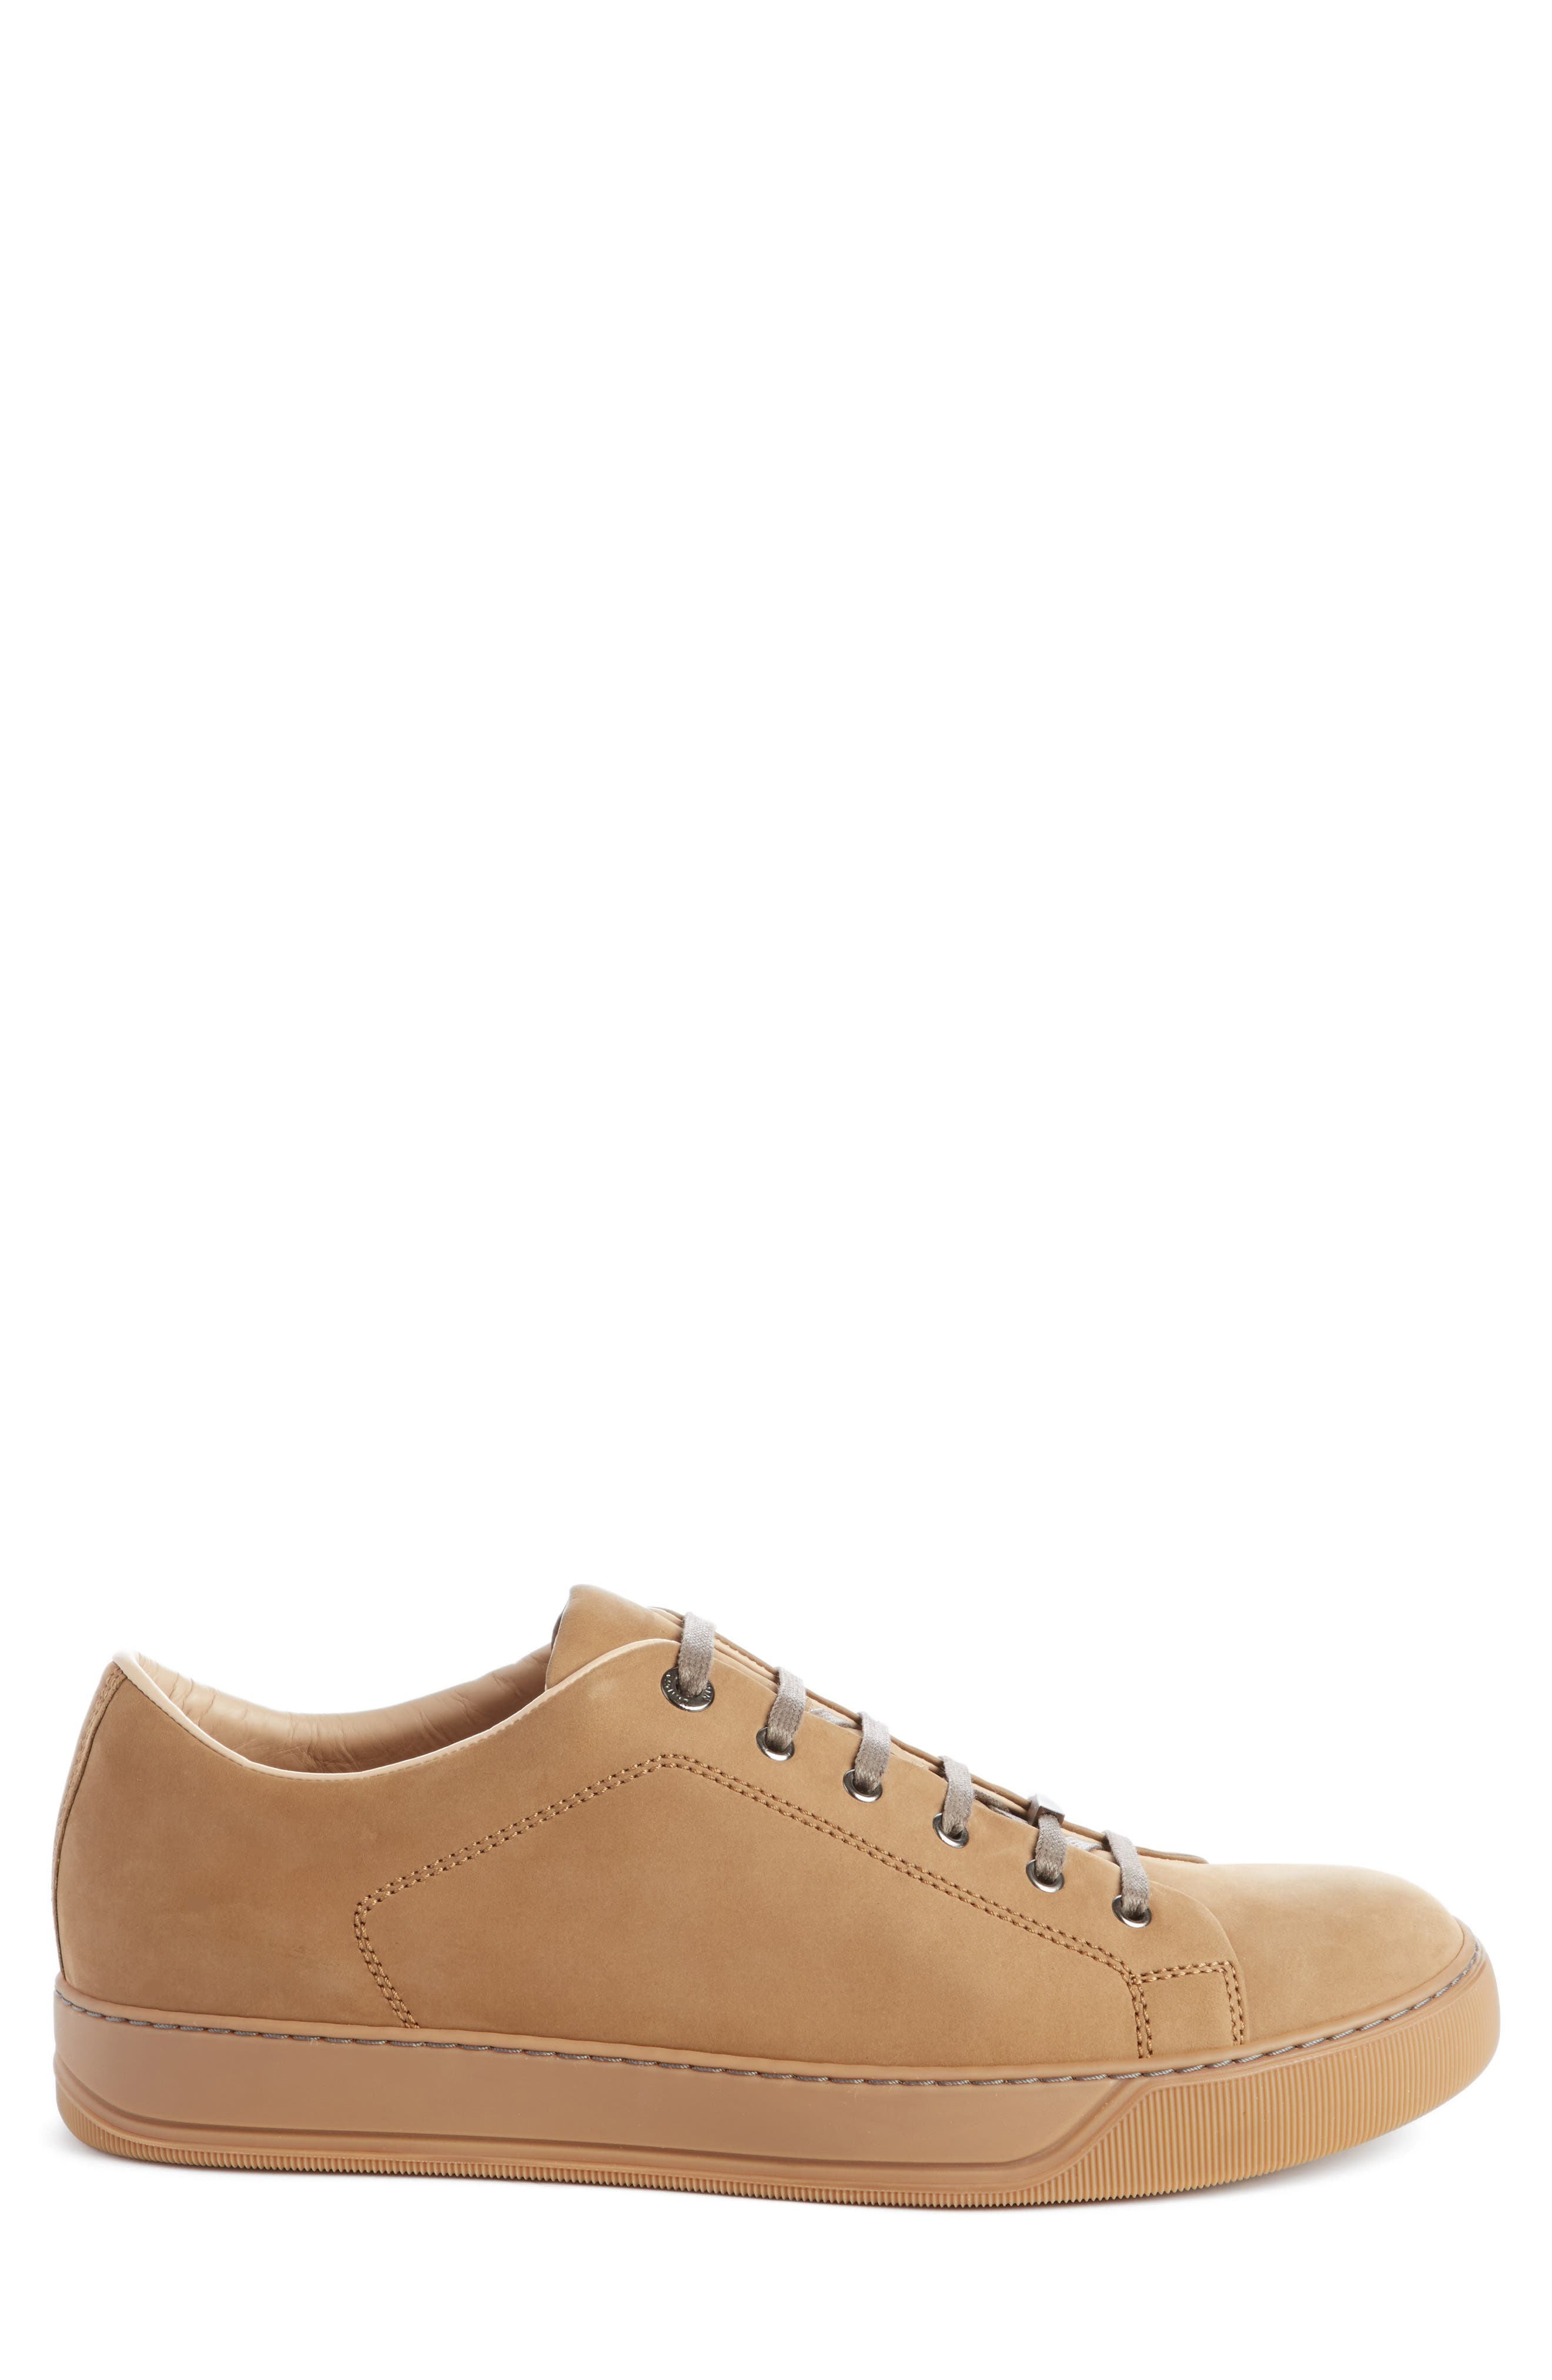 Low Top Cap Toe Sneaker,                             Alternate thumbnail 3, color,                             Havana Suede